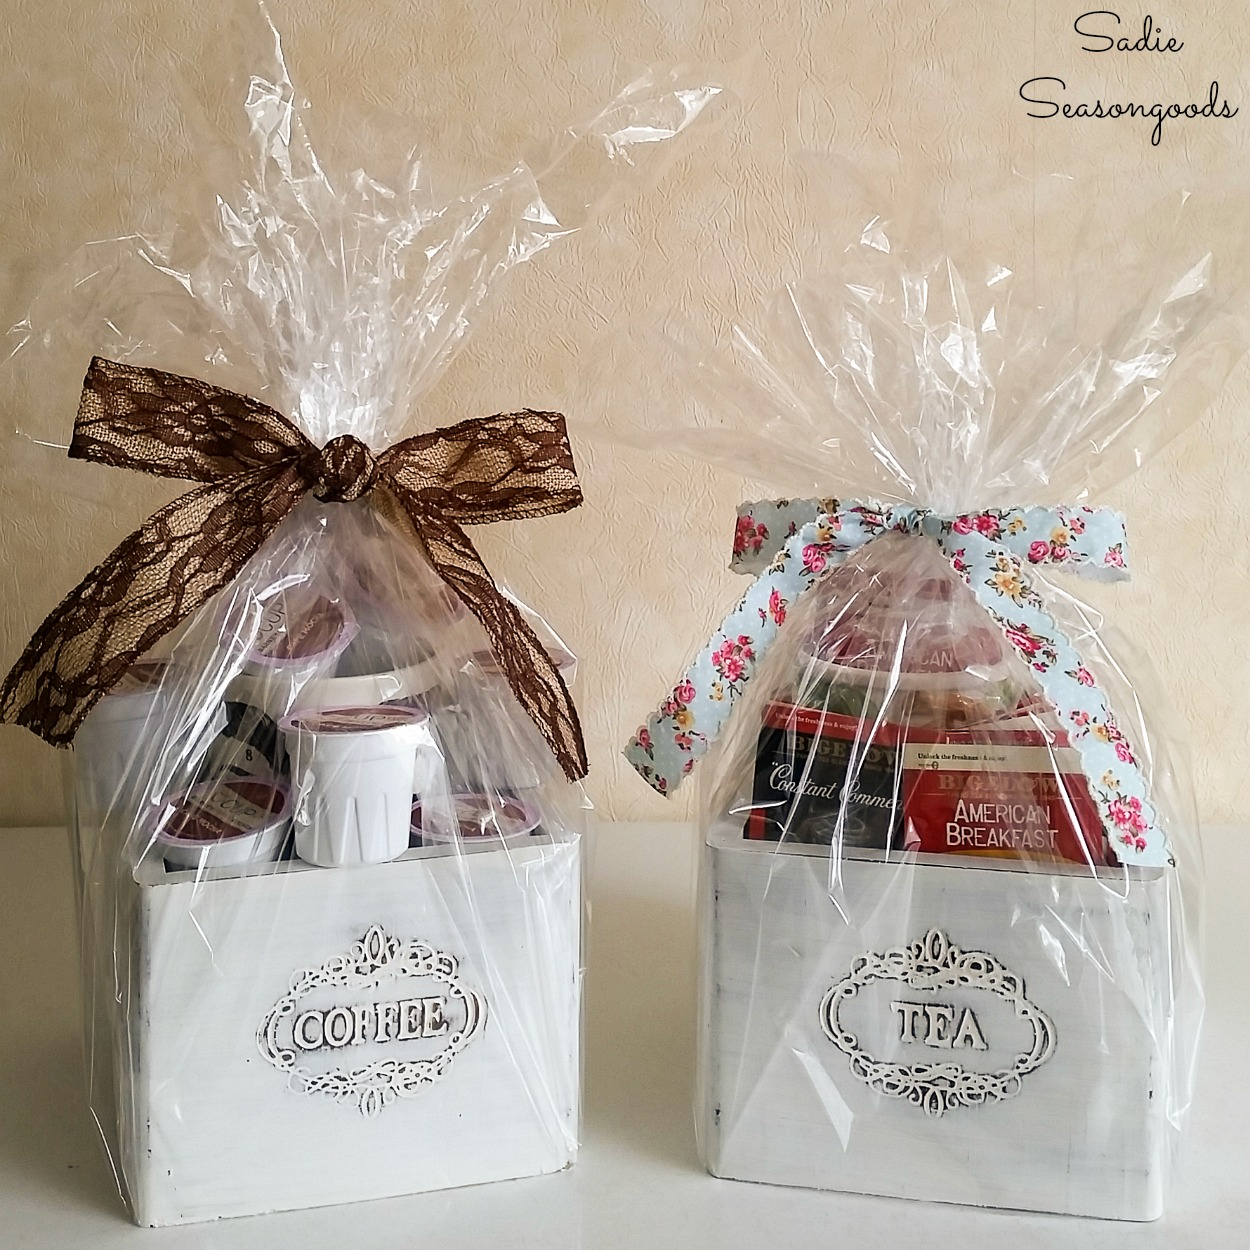 Tea and Coffee Canisters as Wooden Gift Boxes